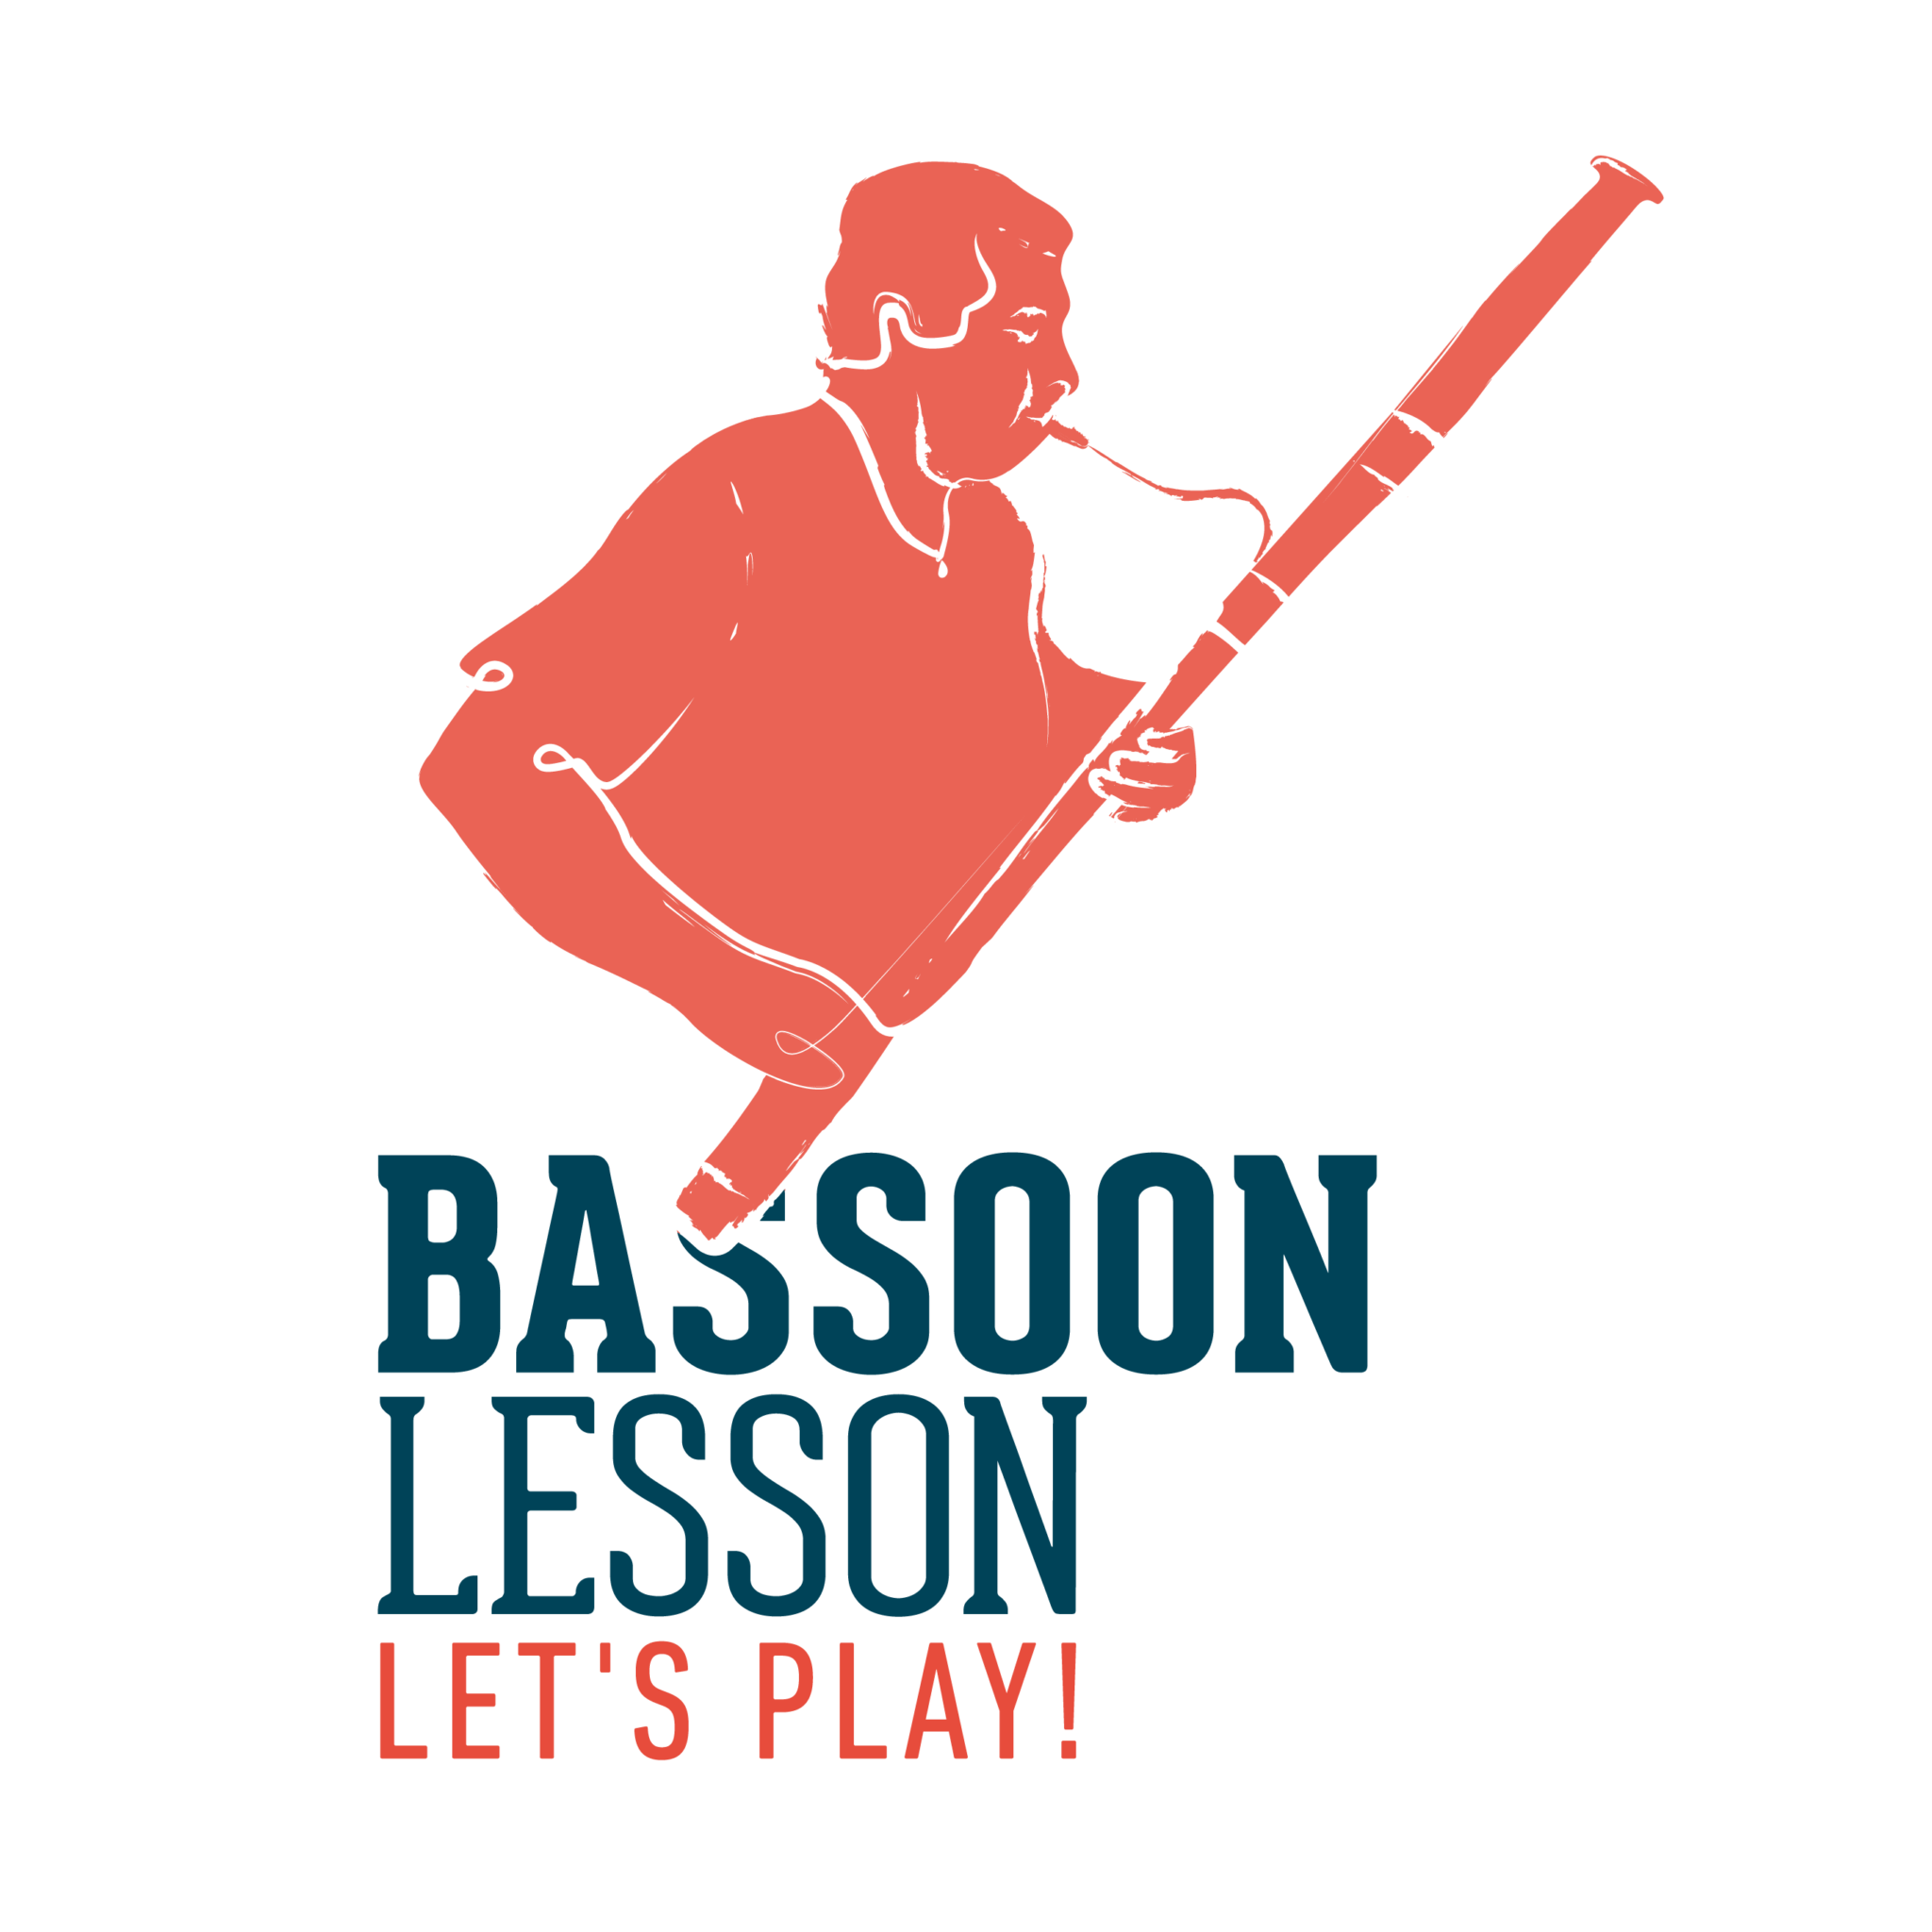 Bassoon Lesson Online